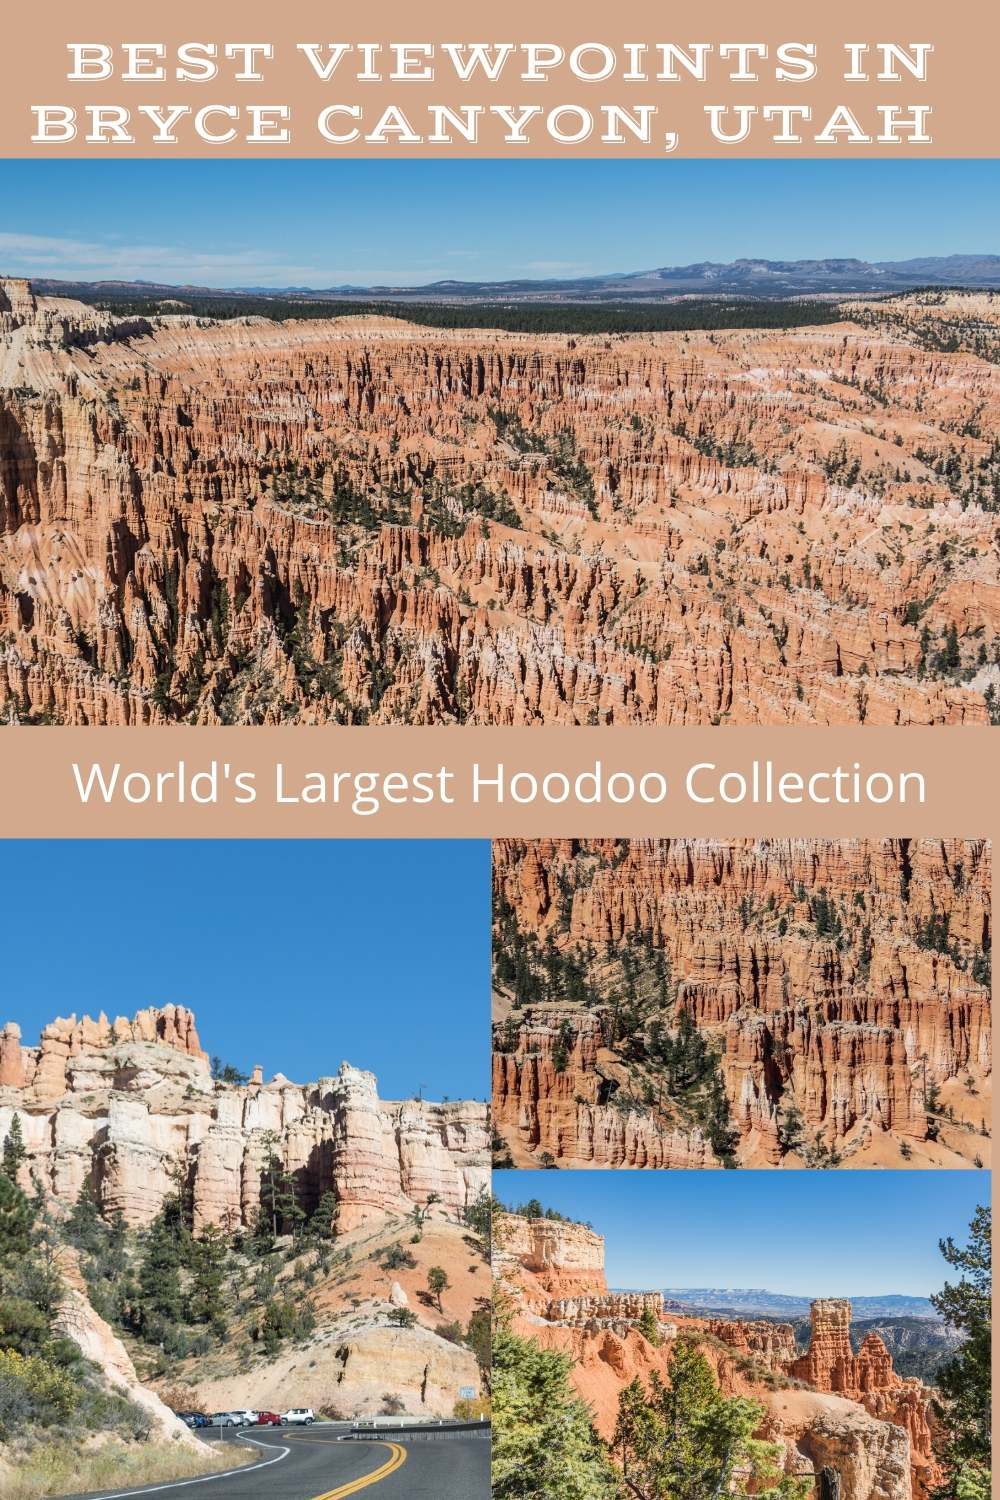 Best viewpoints in Bryce Canyon to discover the world\'s largest hoodoo collection